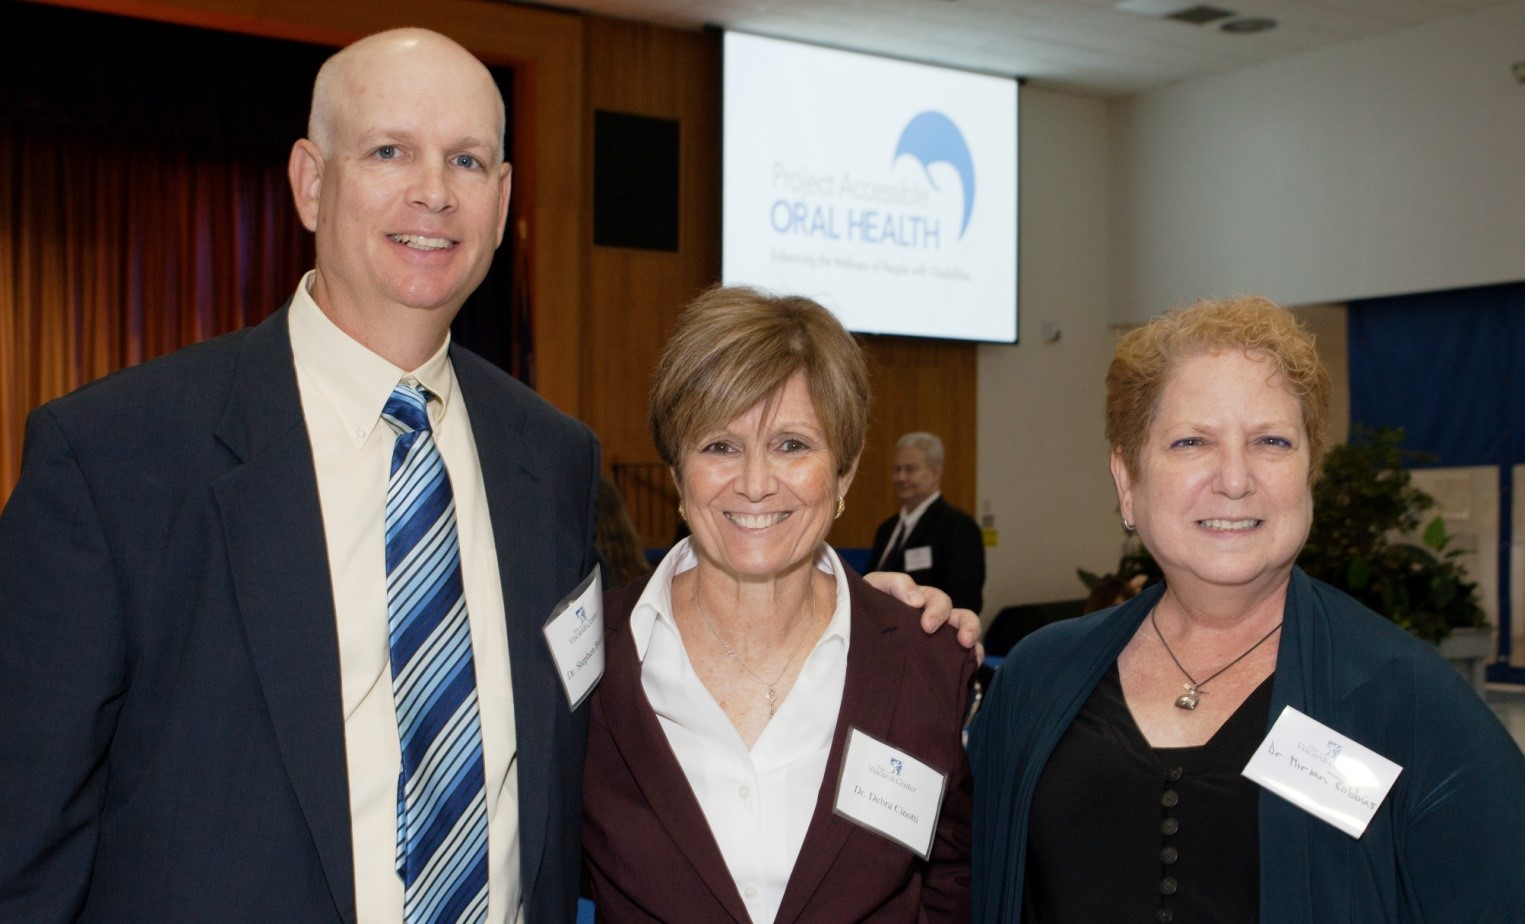 [L-R] Dr. Stephen Beestra, Assistant Dental Chief at Arkansas Children's Hospital with   Dr. Debra Cinotti, Chair for the Department of General Dentistry of the Stony Brook School of Dental Medicine and Dr. Miriam Robbins, Chair of Dental Medicine, Winthrop Hospital.